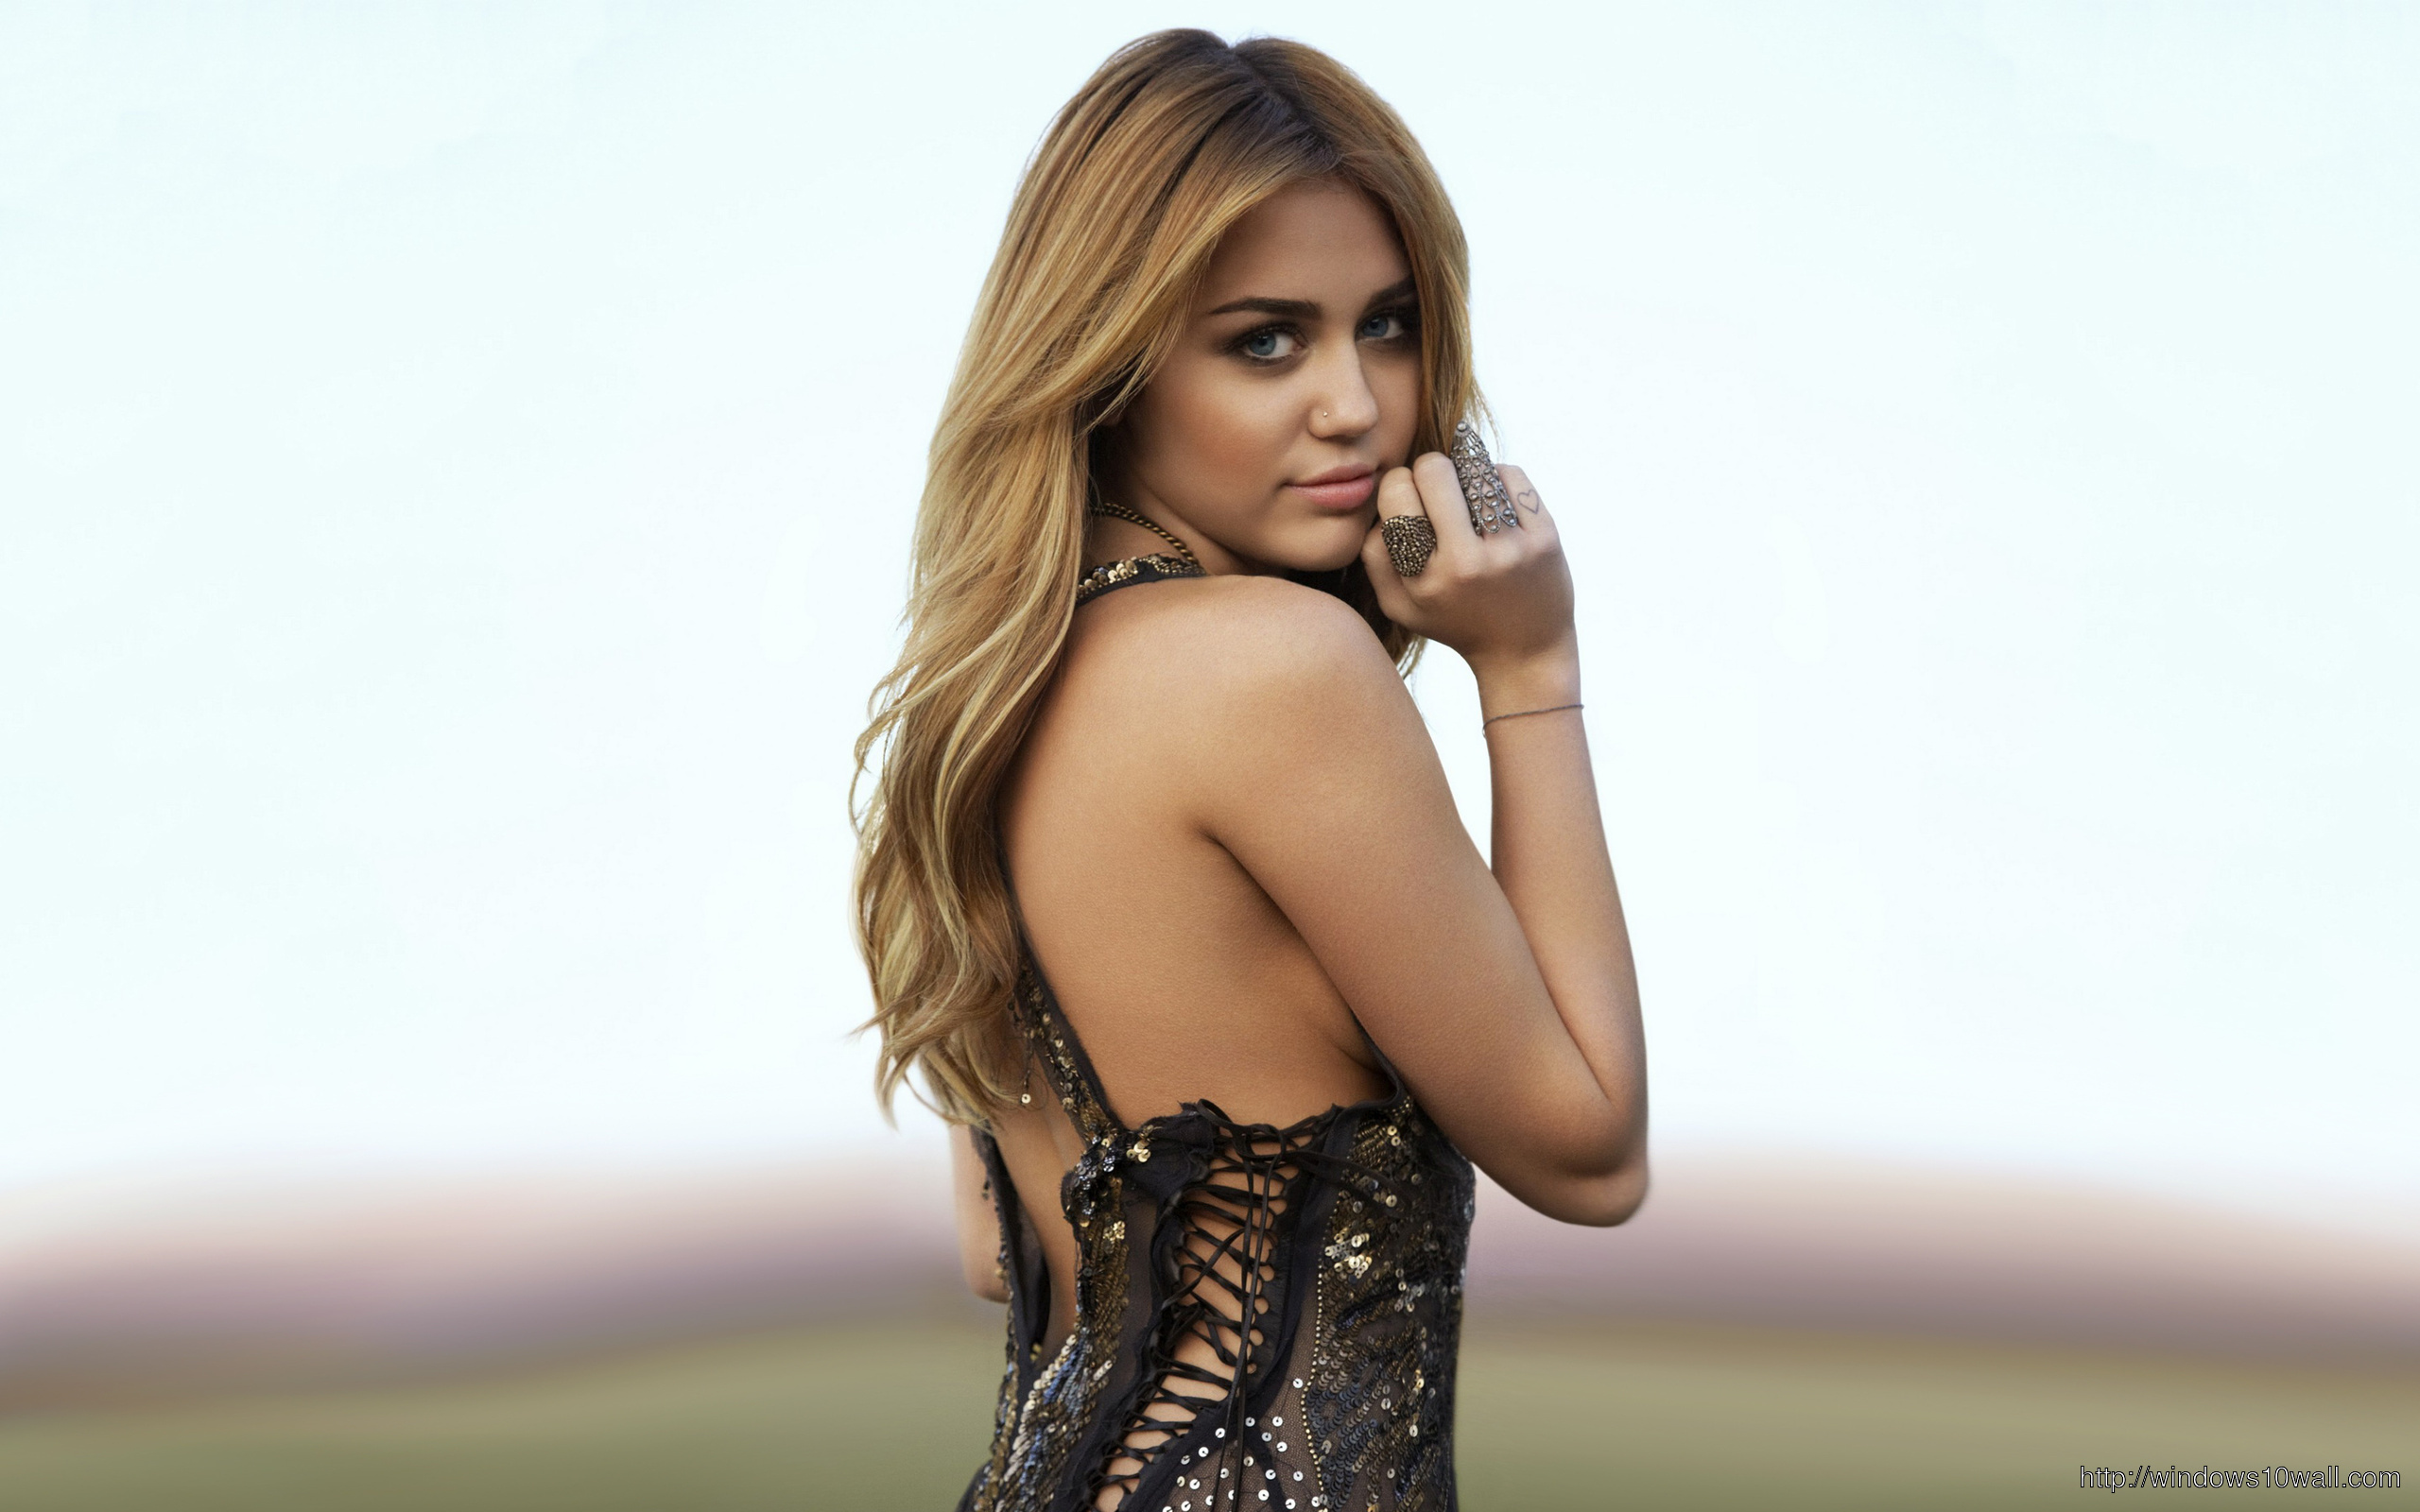 Celebrity Miley Cyrus 2013 Must See Wallpaper